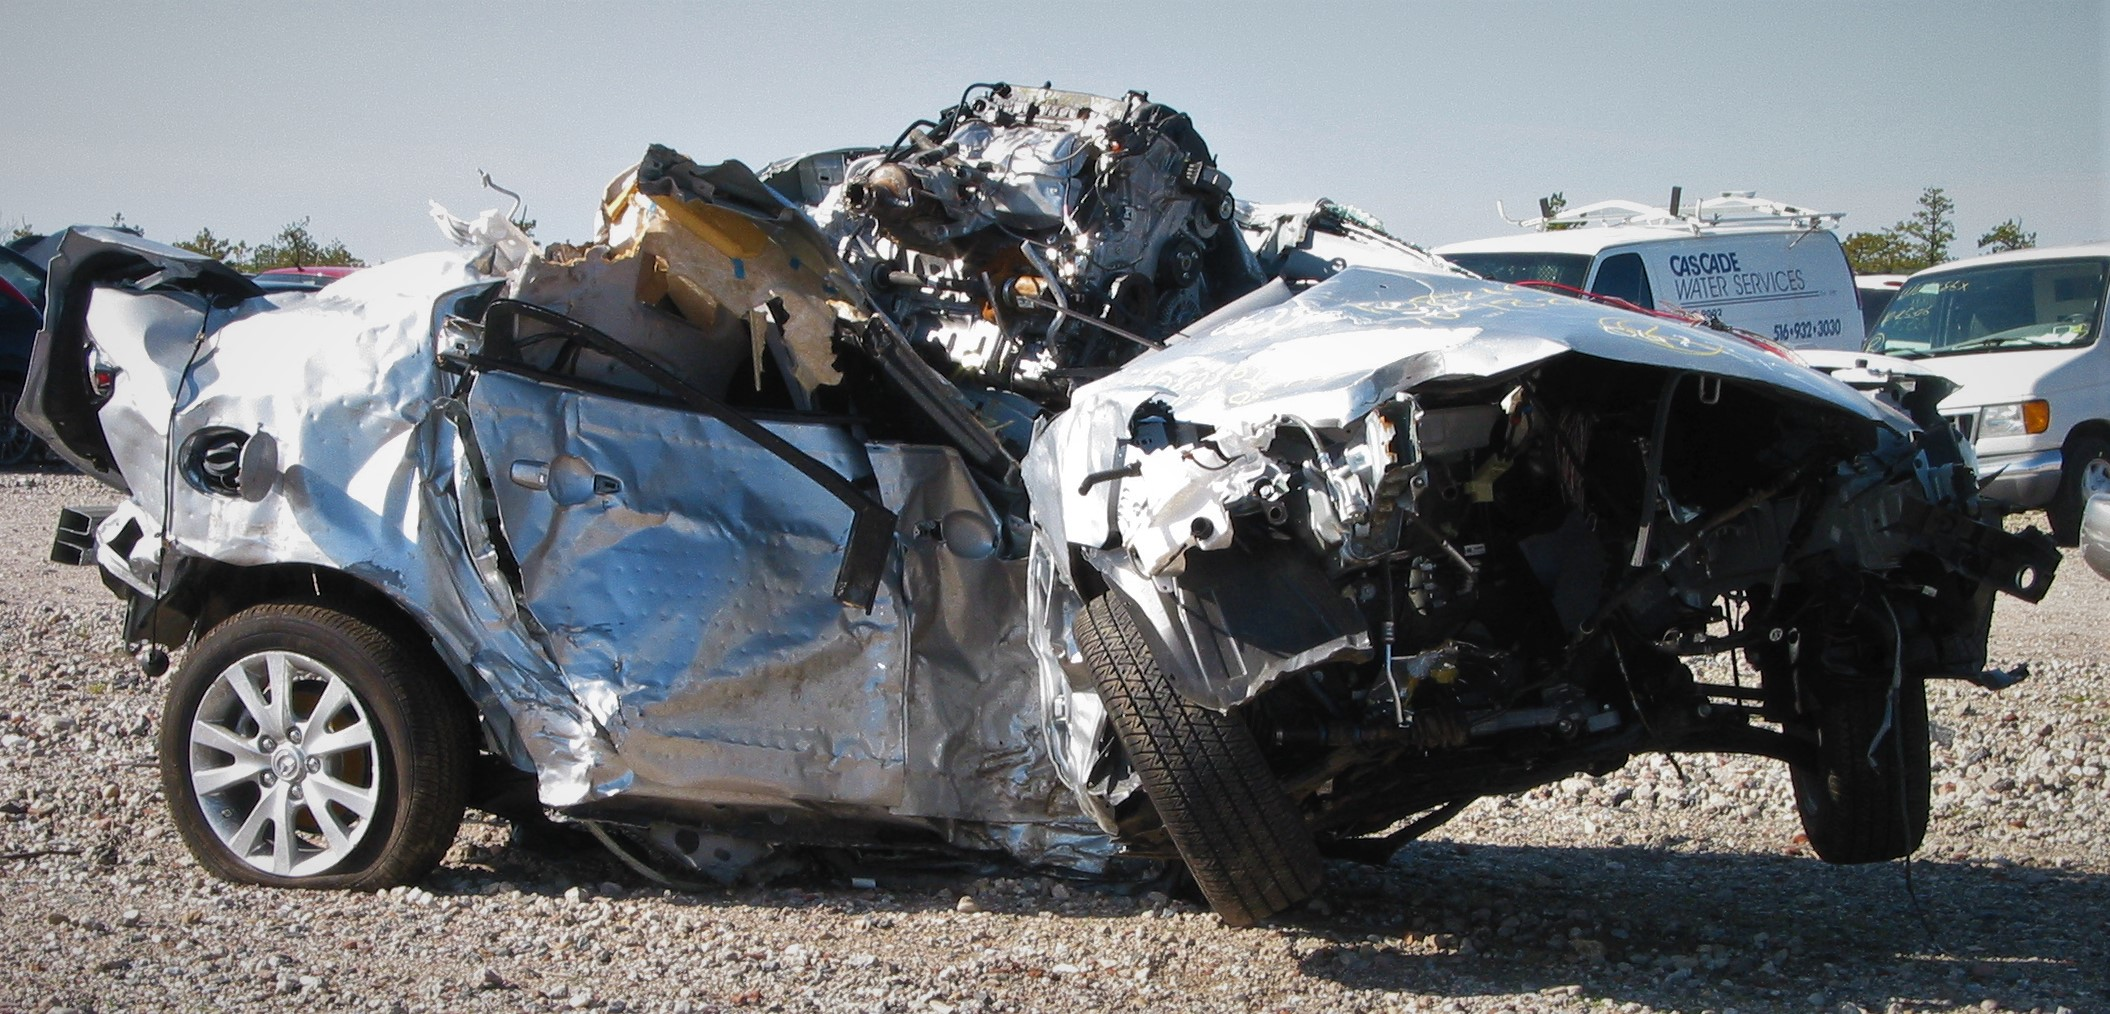 collision damage analysis, accident reconstruction